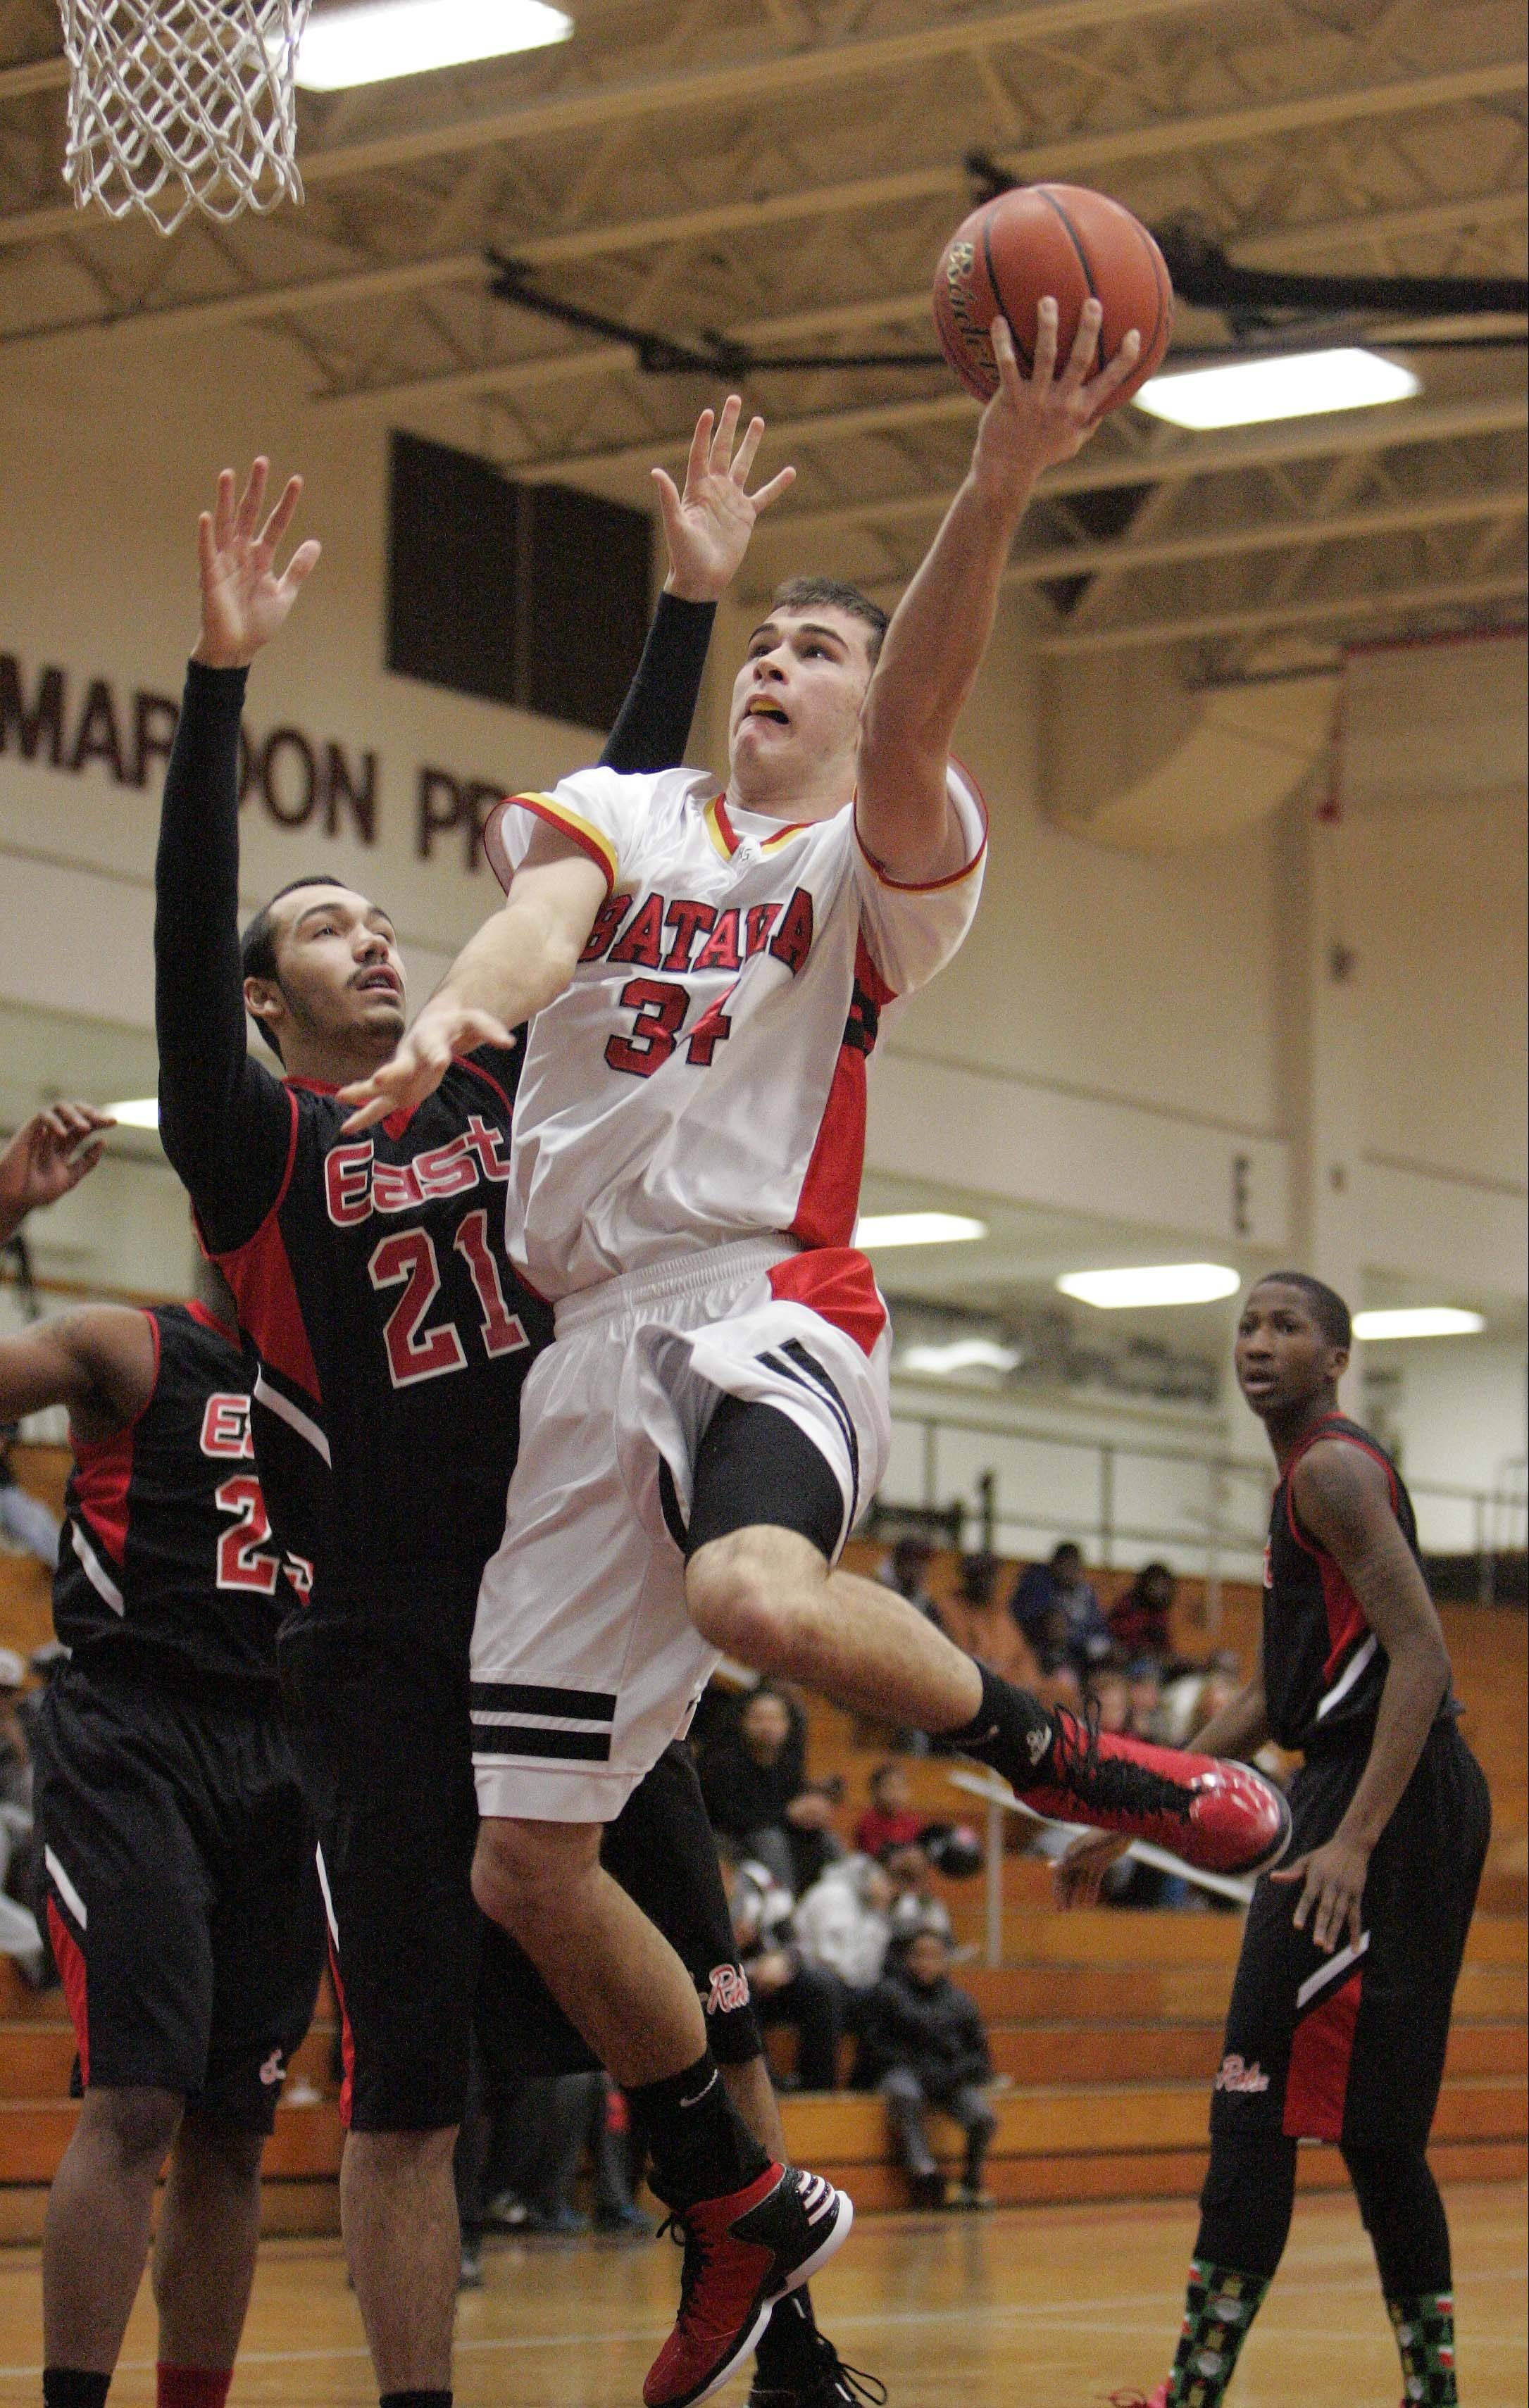 Batavia's Zach Strittmatter drives against Rockford East Thursday at the Elgin Holiday Tournament.